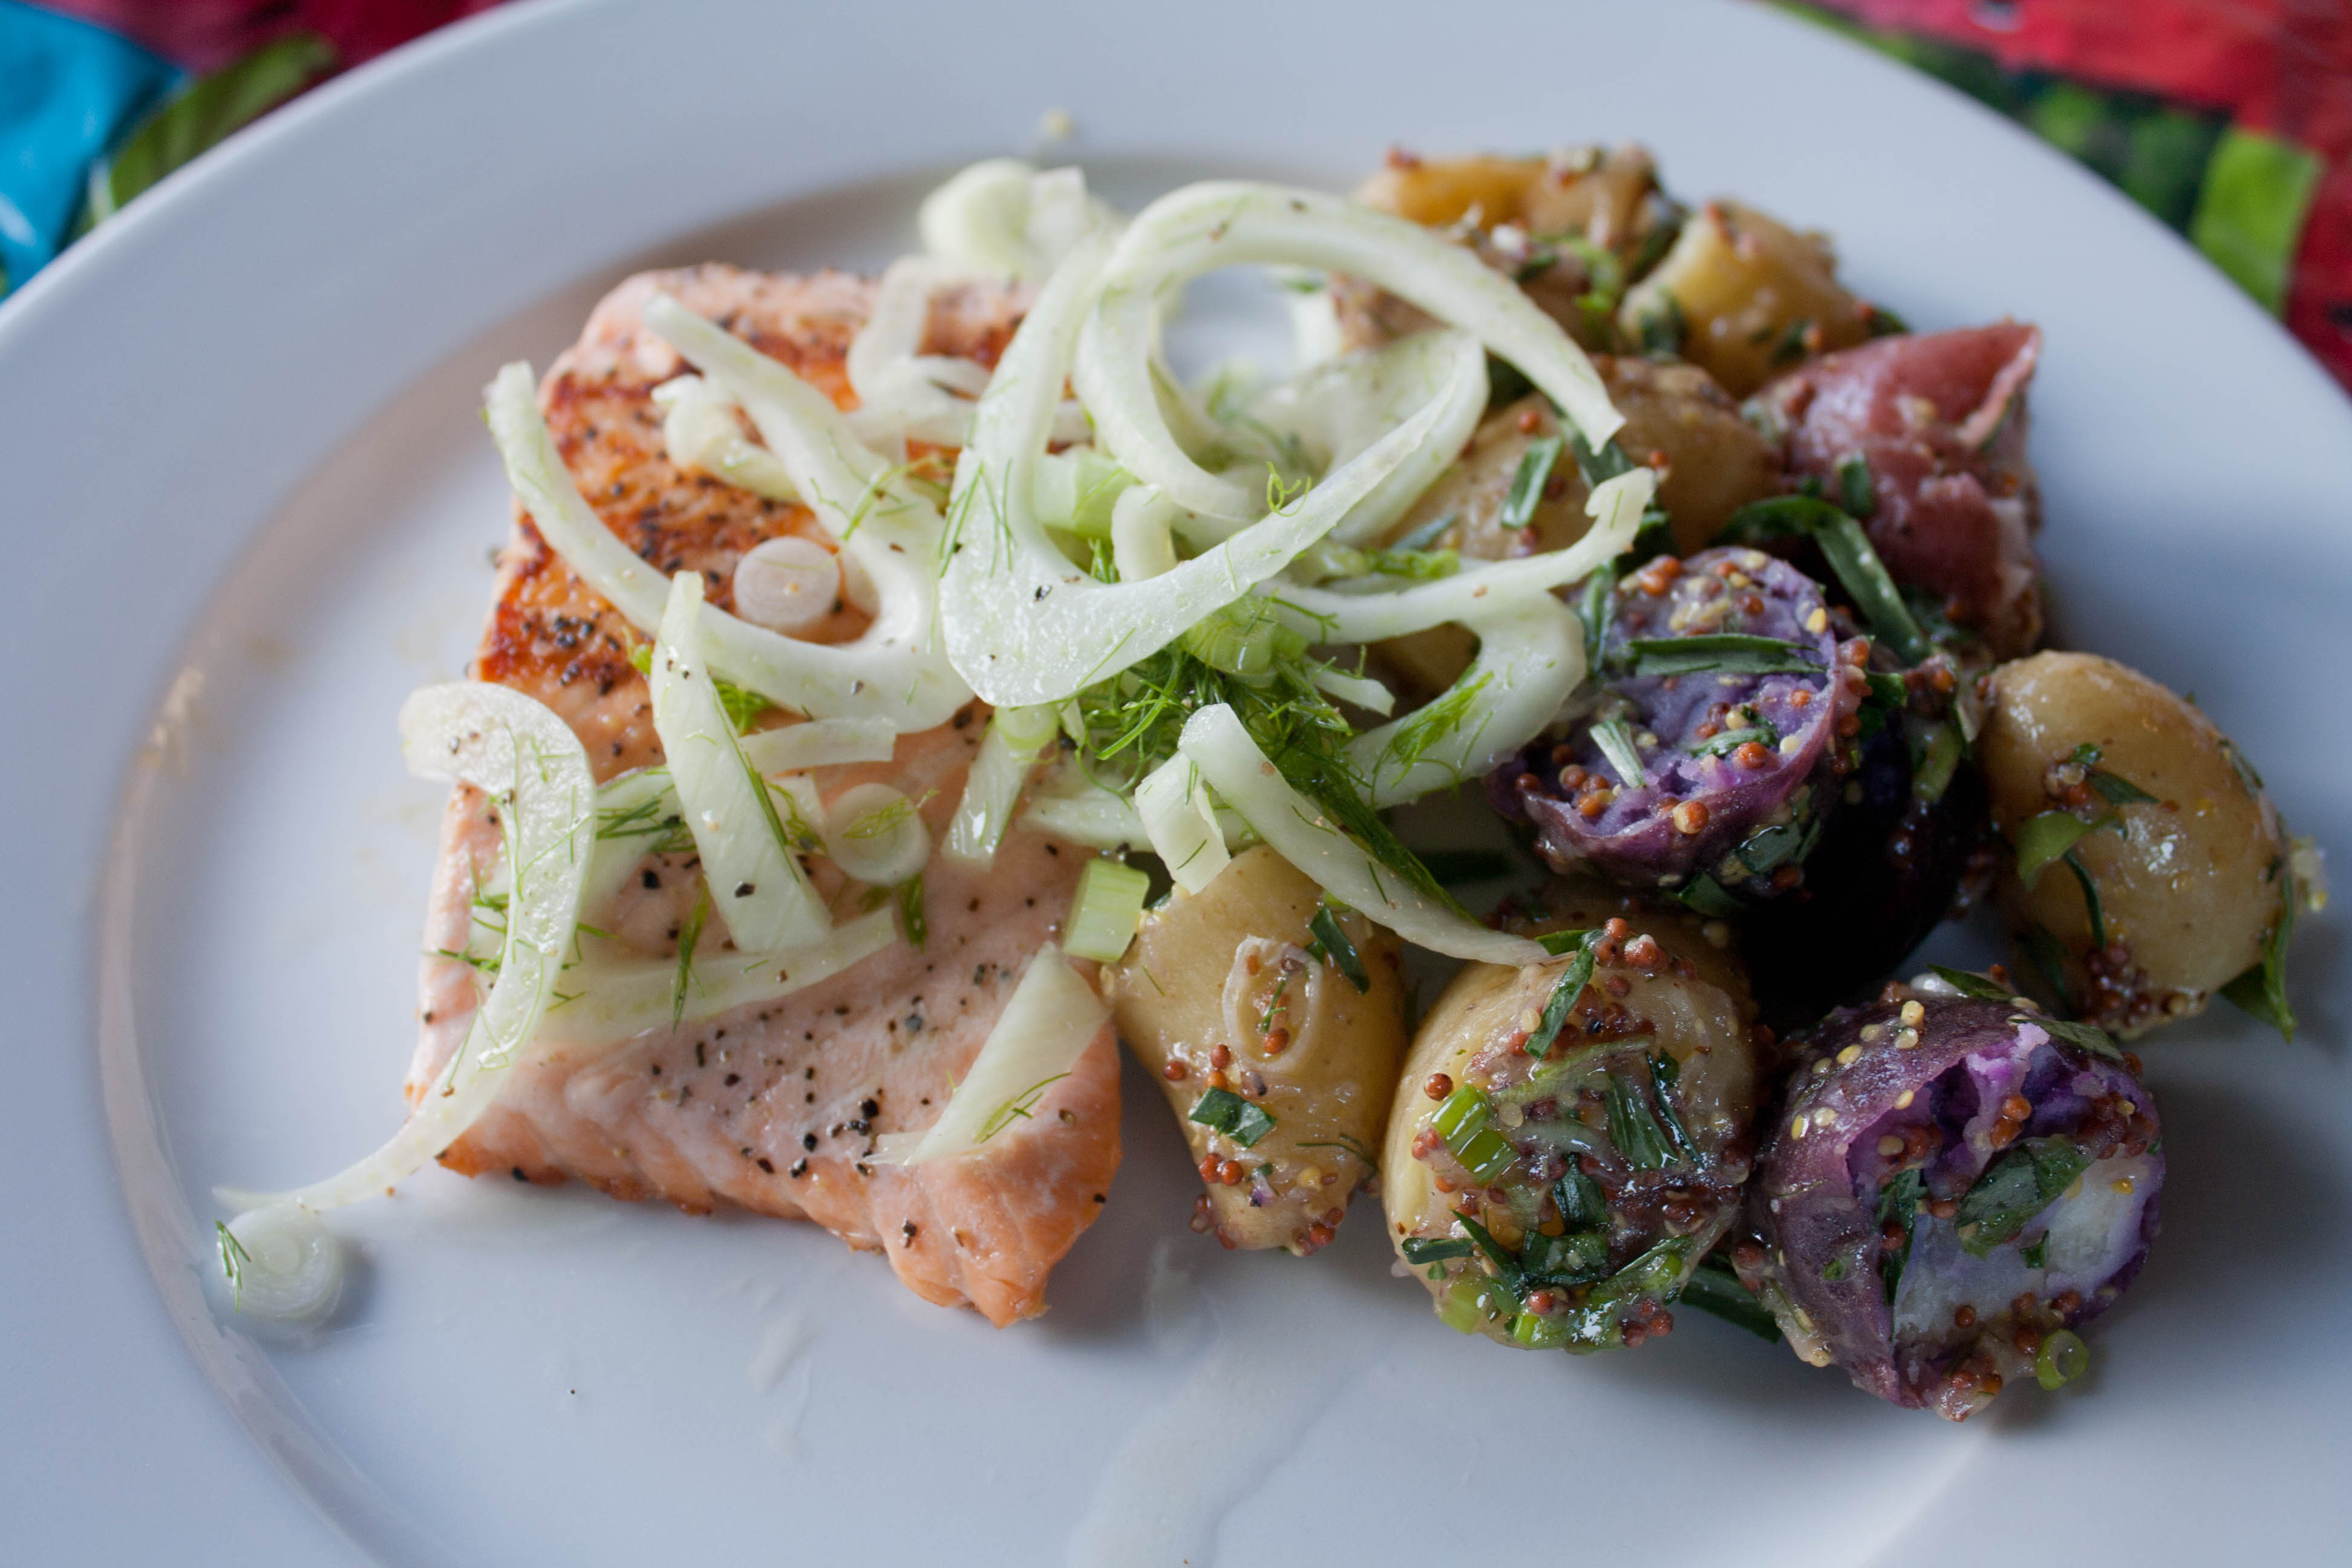 Blue apron salmon - This Was Shocking Because Historically I Hate Fennel Maybe It S Fennel Seeds I Dislike Not Sure But It S A Huge Turn Off To Me And I Was Shocked That I